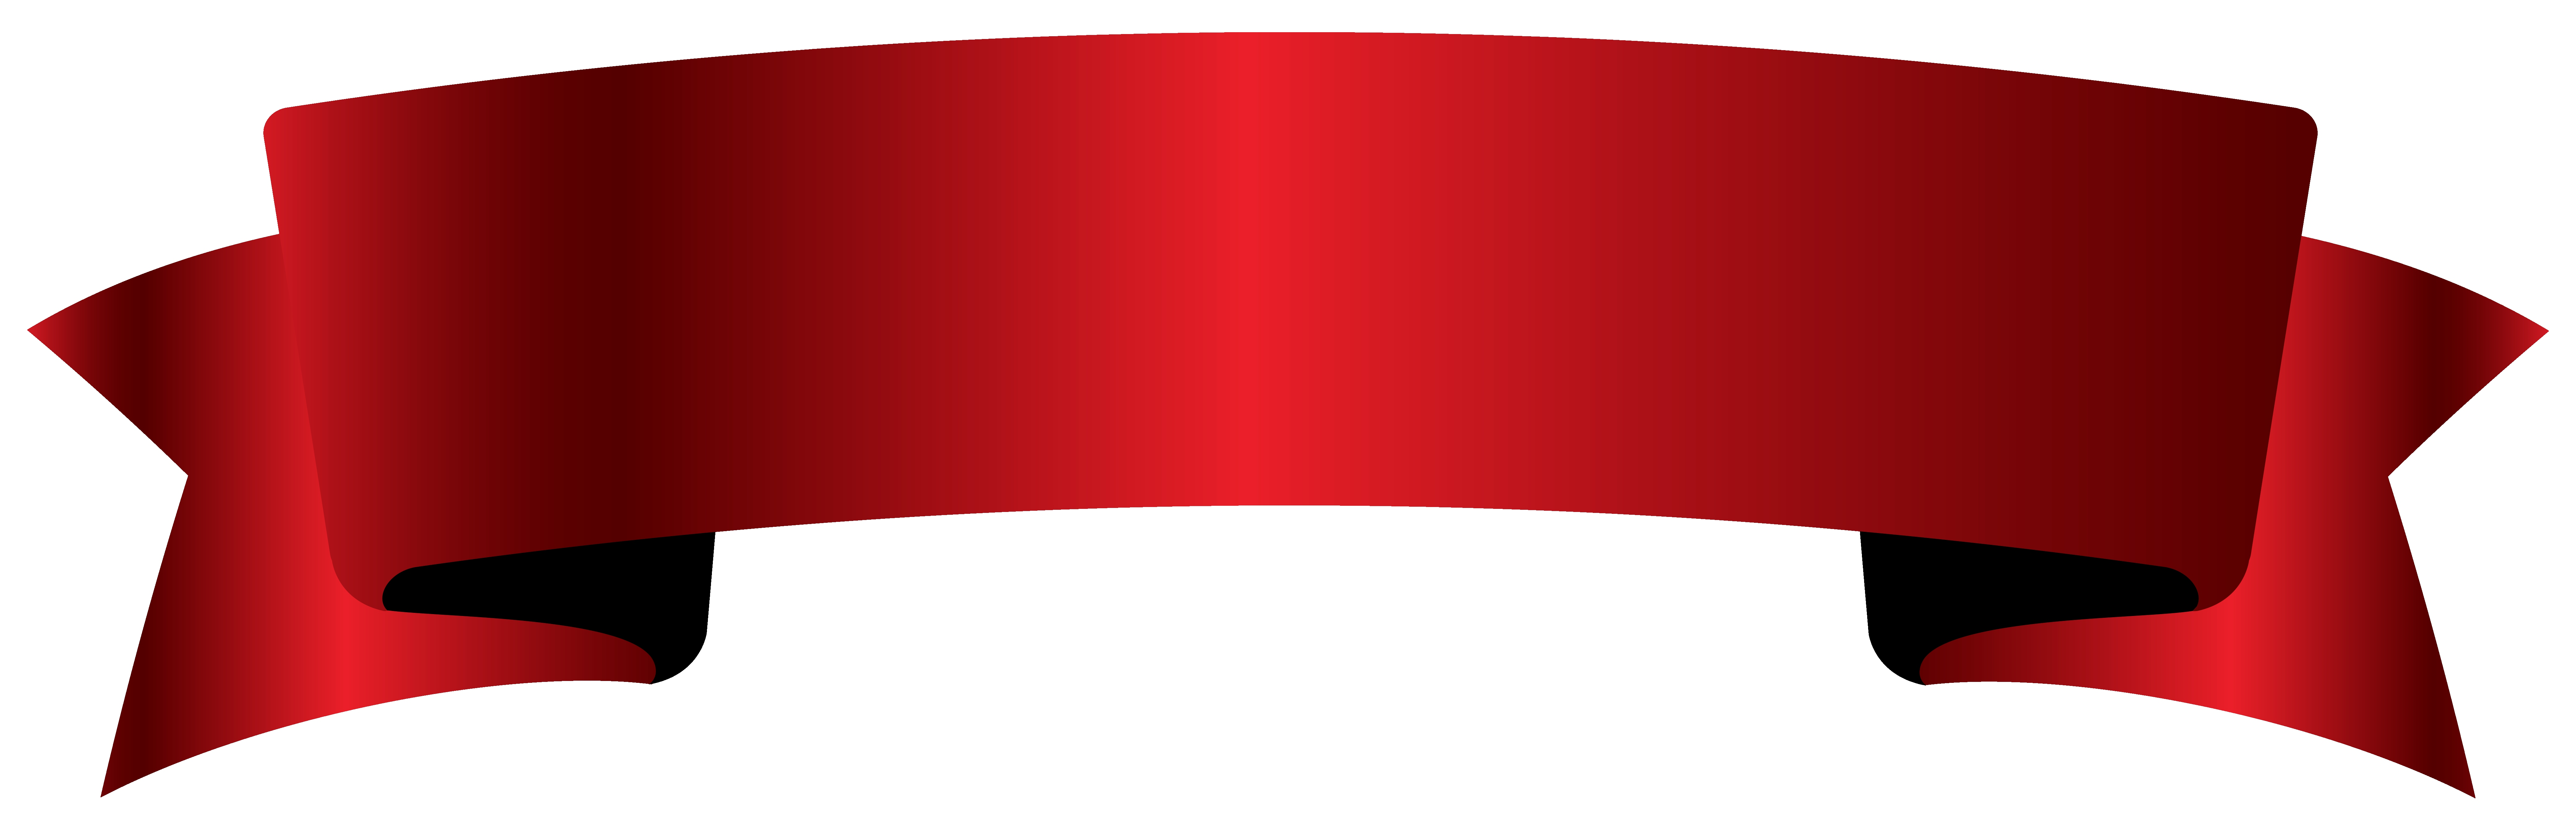 8326x2675 Opaque Banner Cliparts Free Download Clip Art